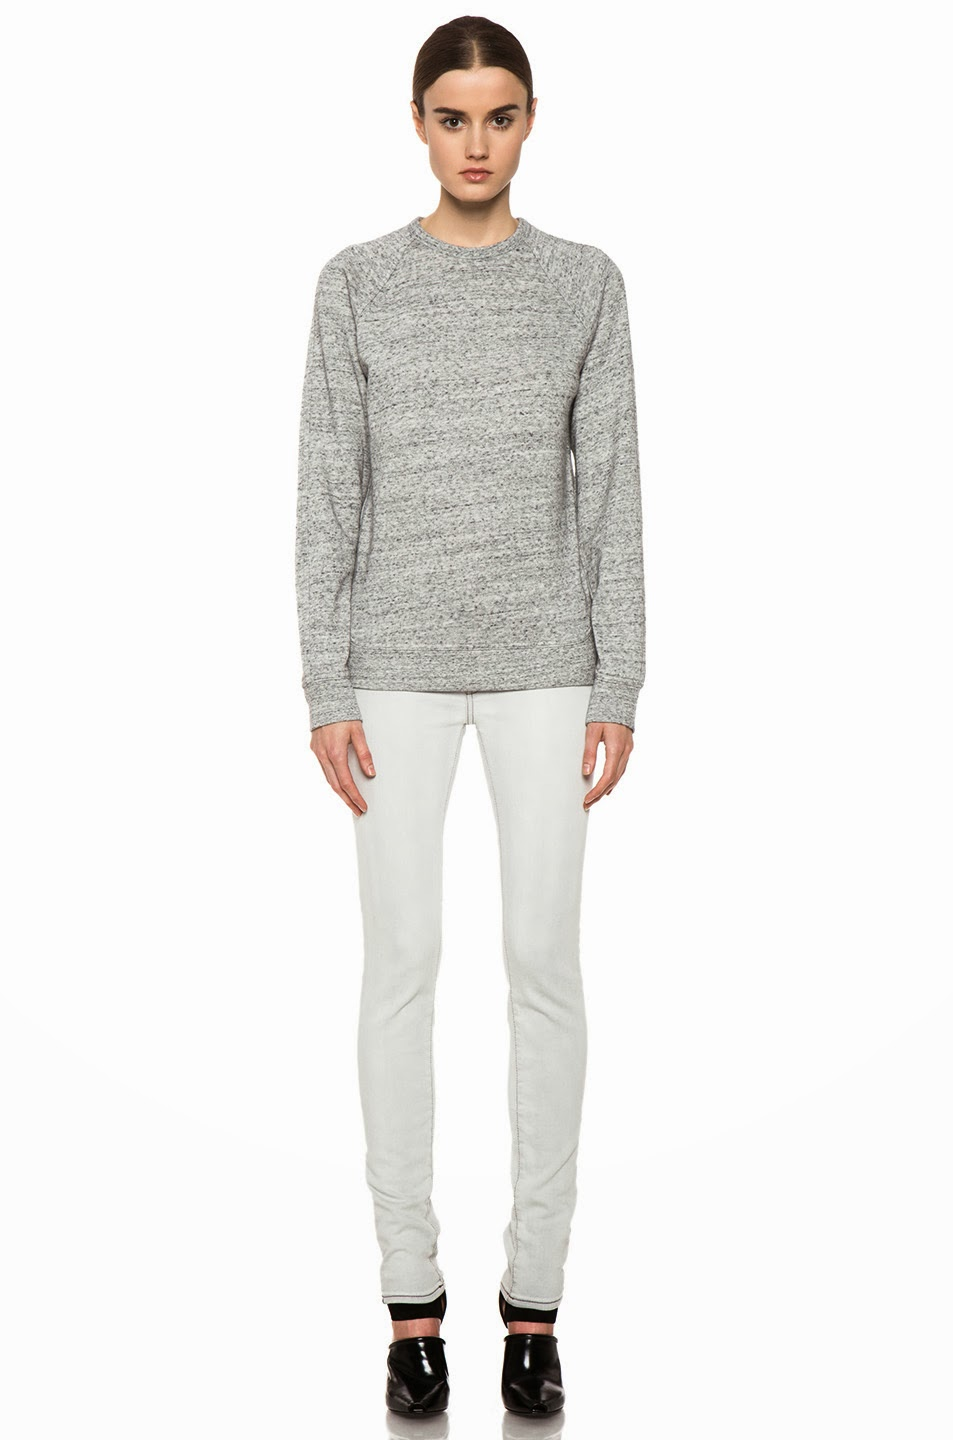 Alexander Wang Heathered Grey Sweatshirt